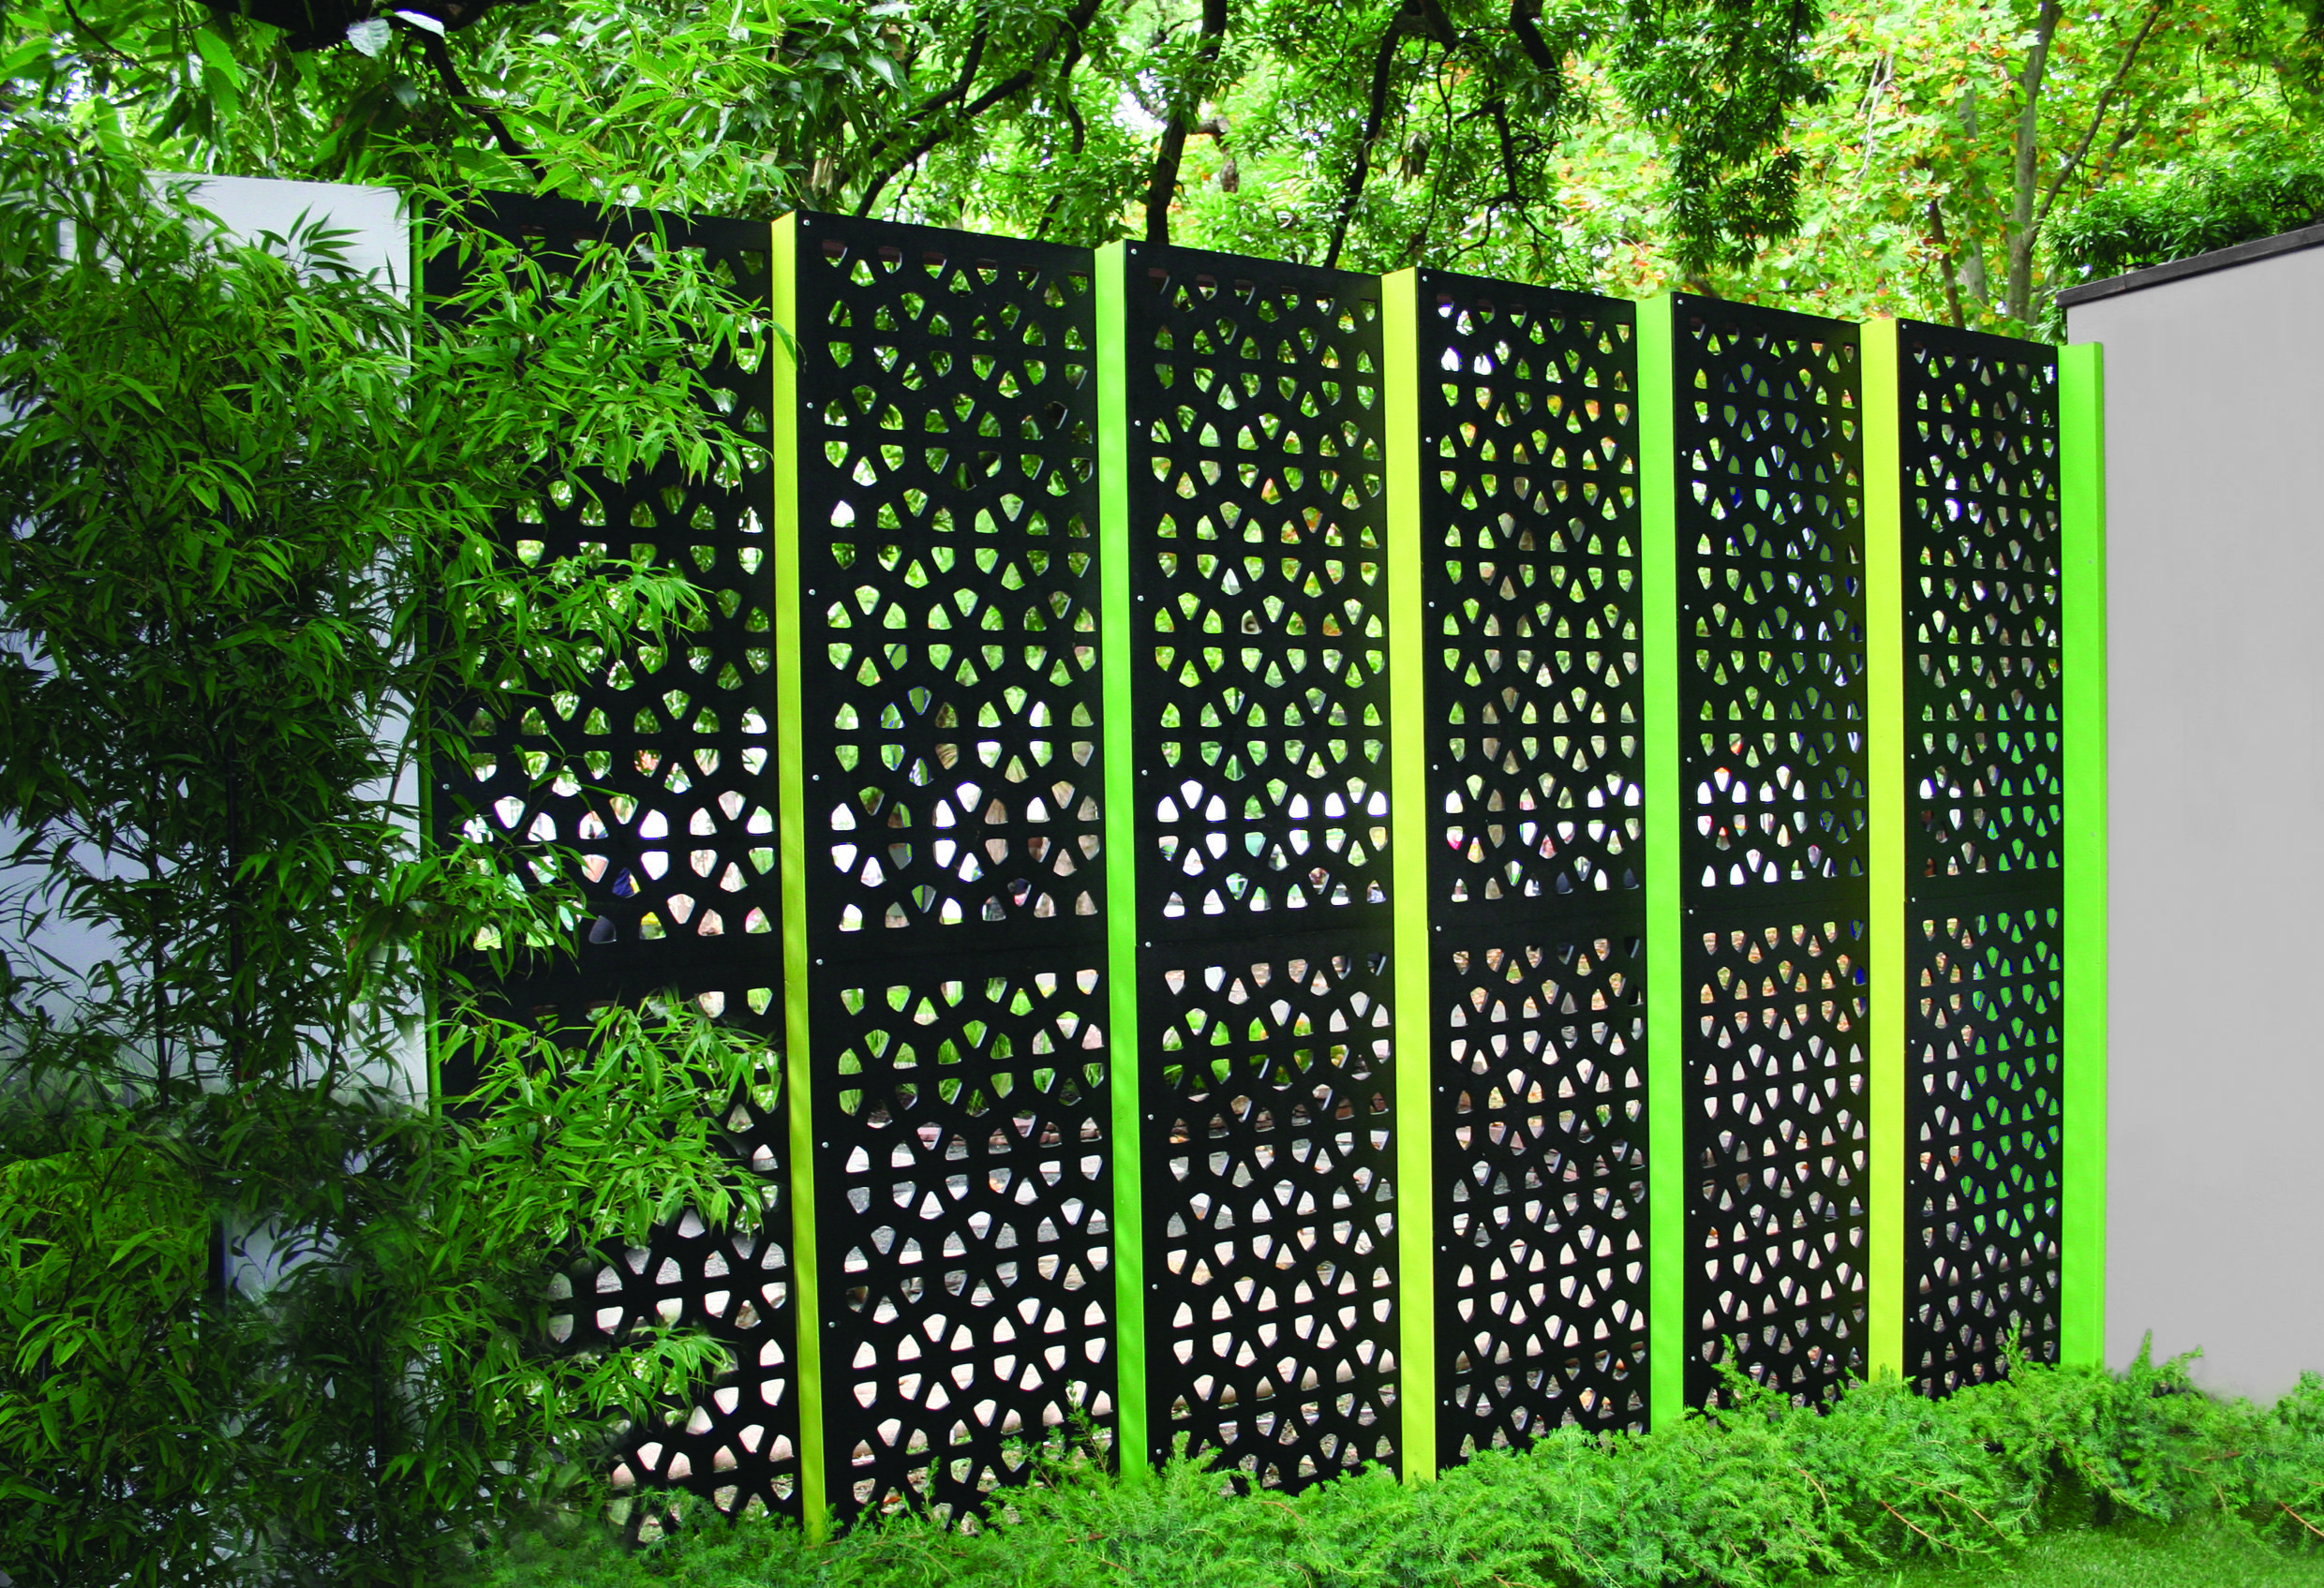 Backyard Privacy Screens Decorative Metal Outdoor Panel Screen Garden